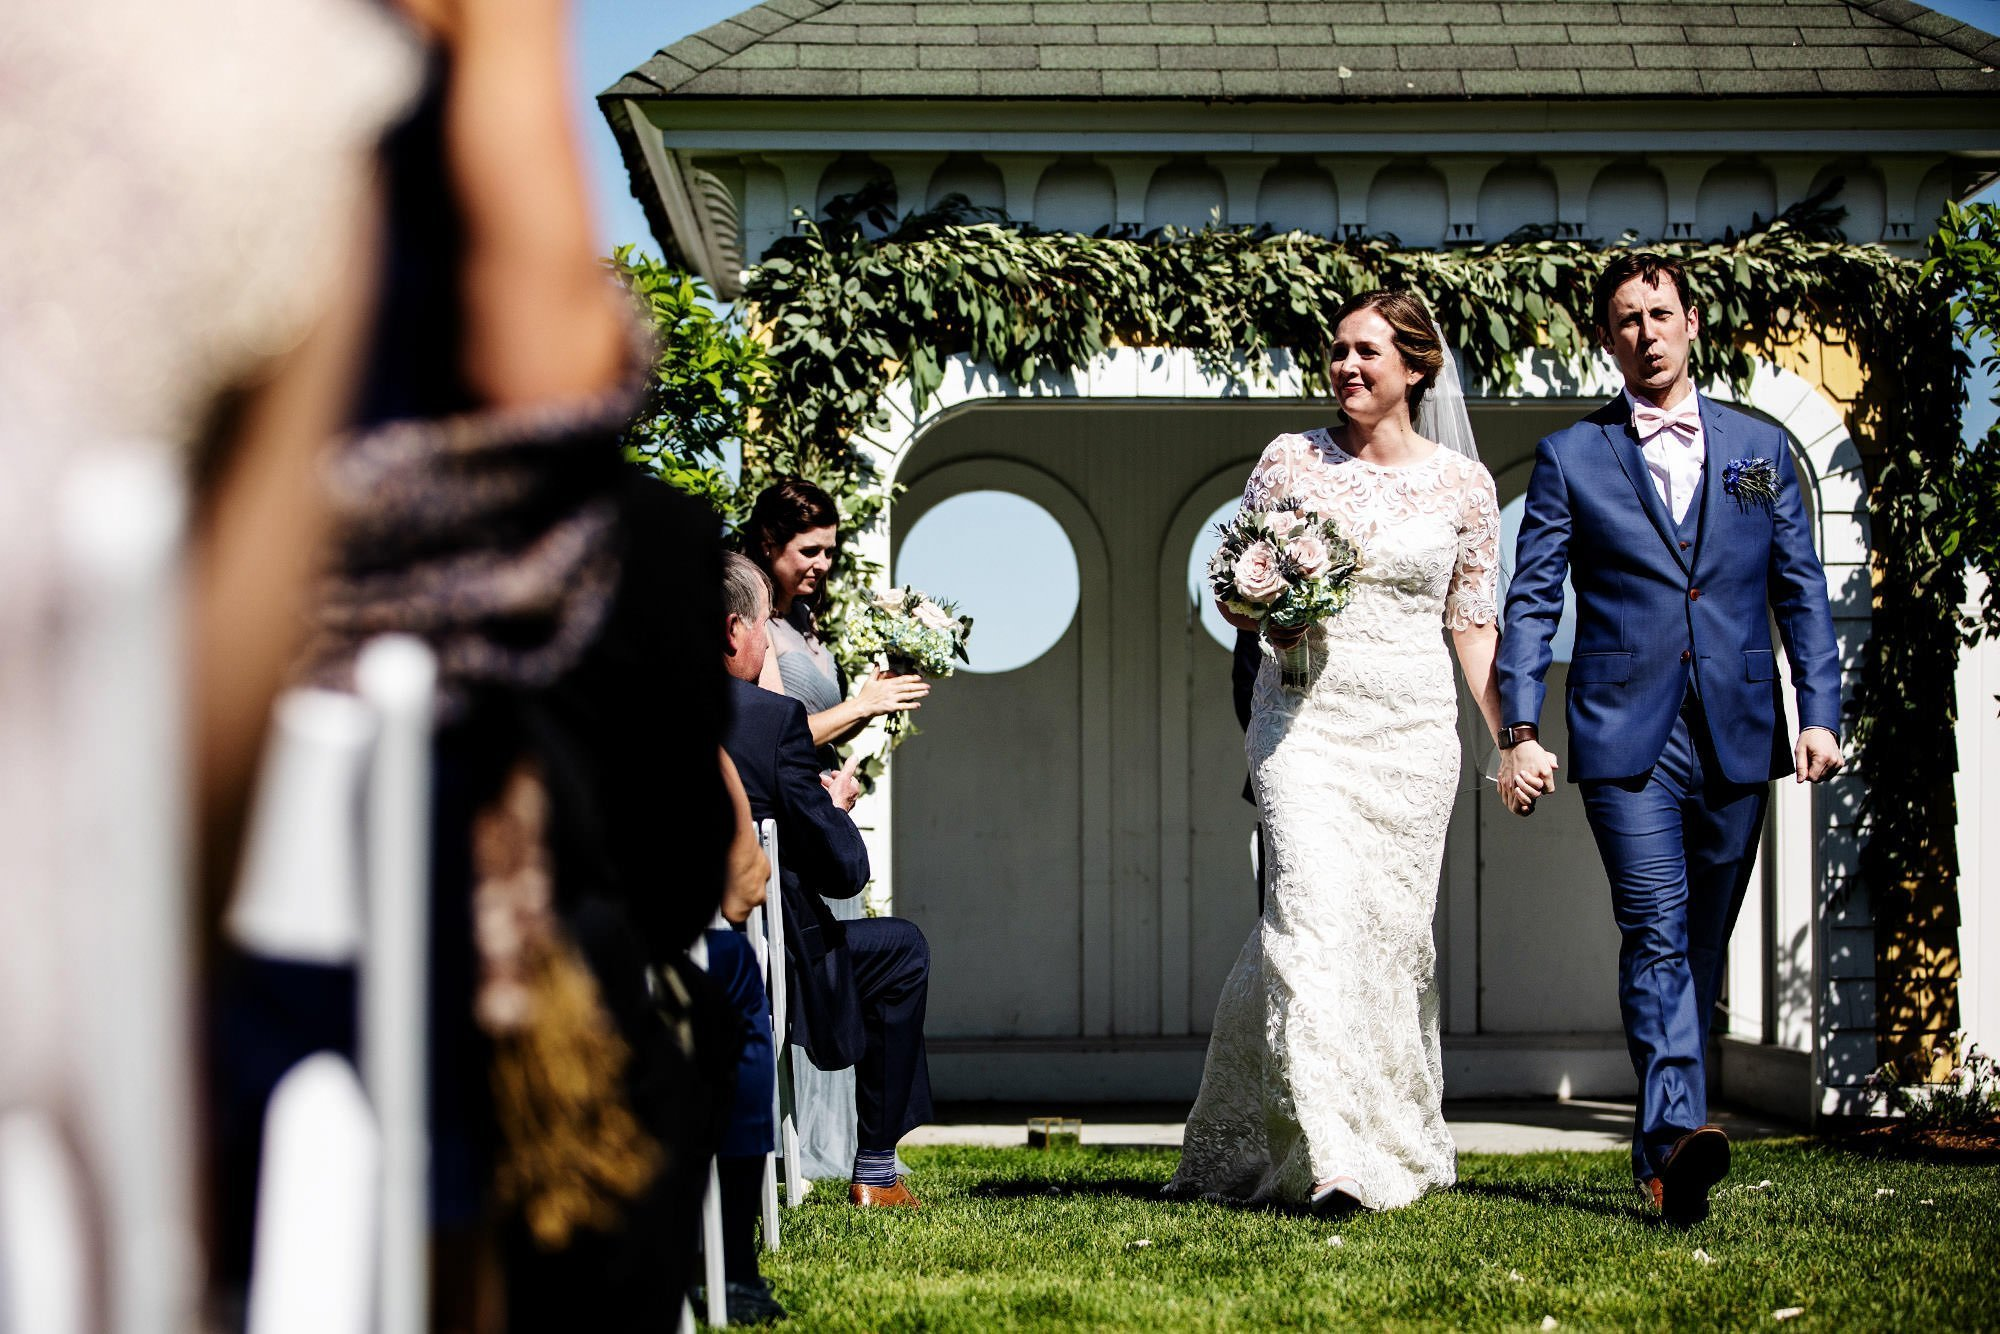 The couple walk down the aisle during the Mountain View Grand Wedding ceremony.